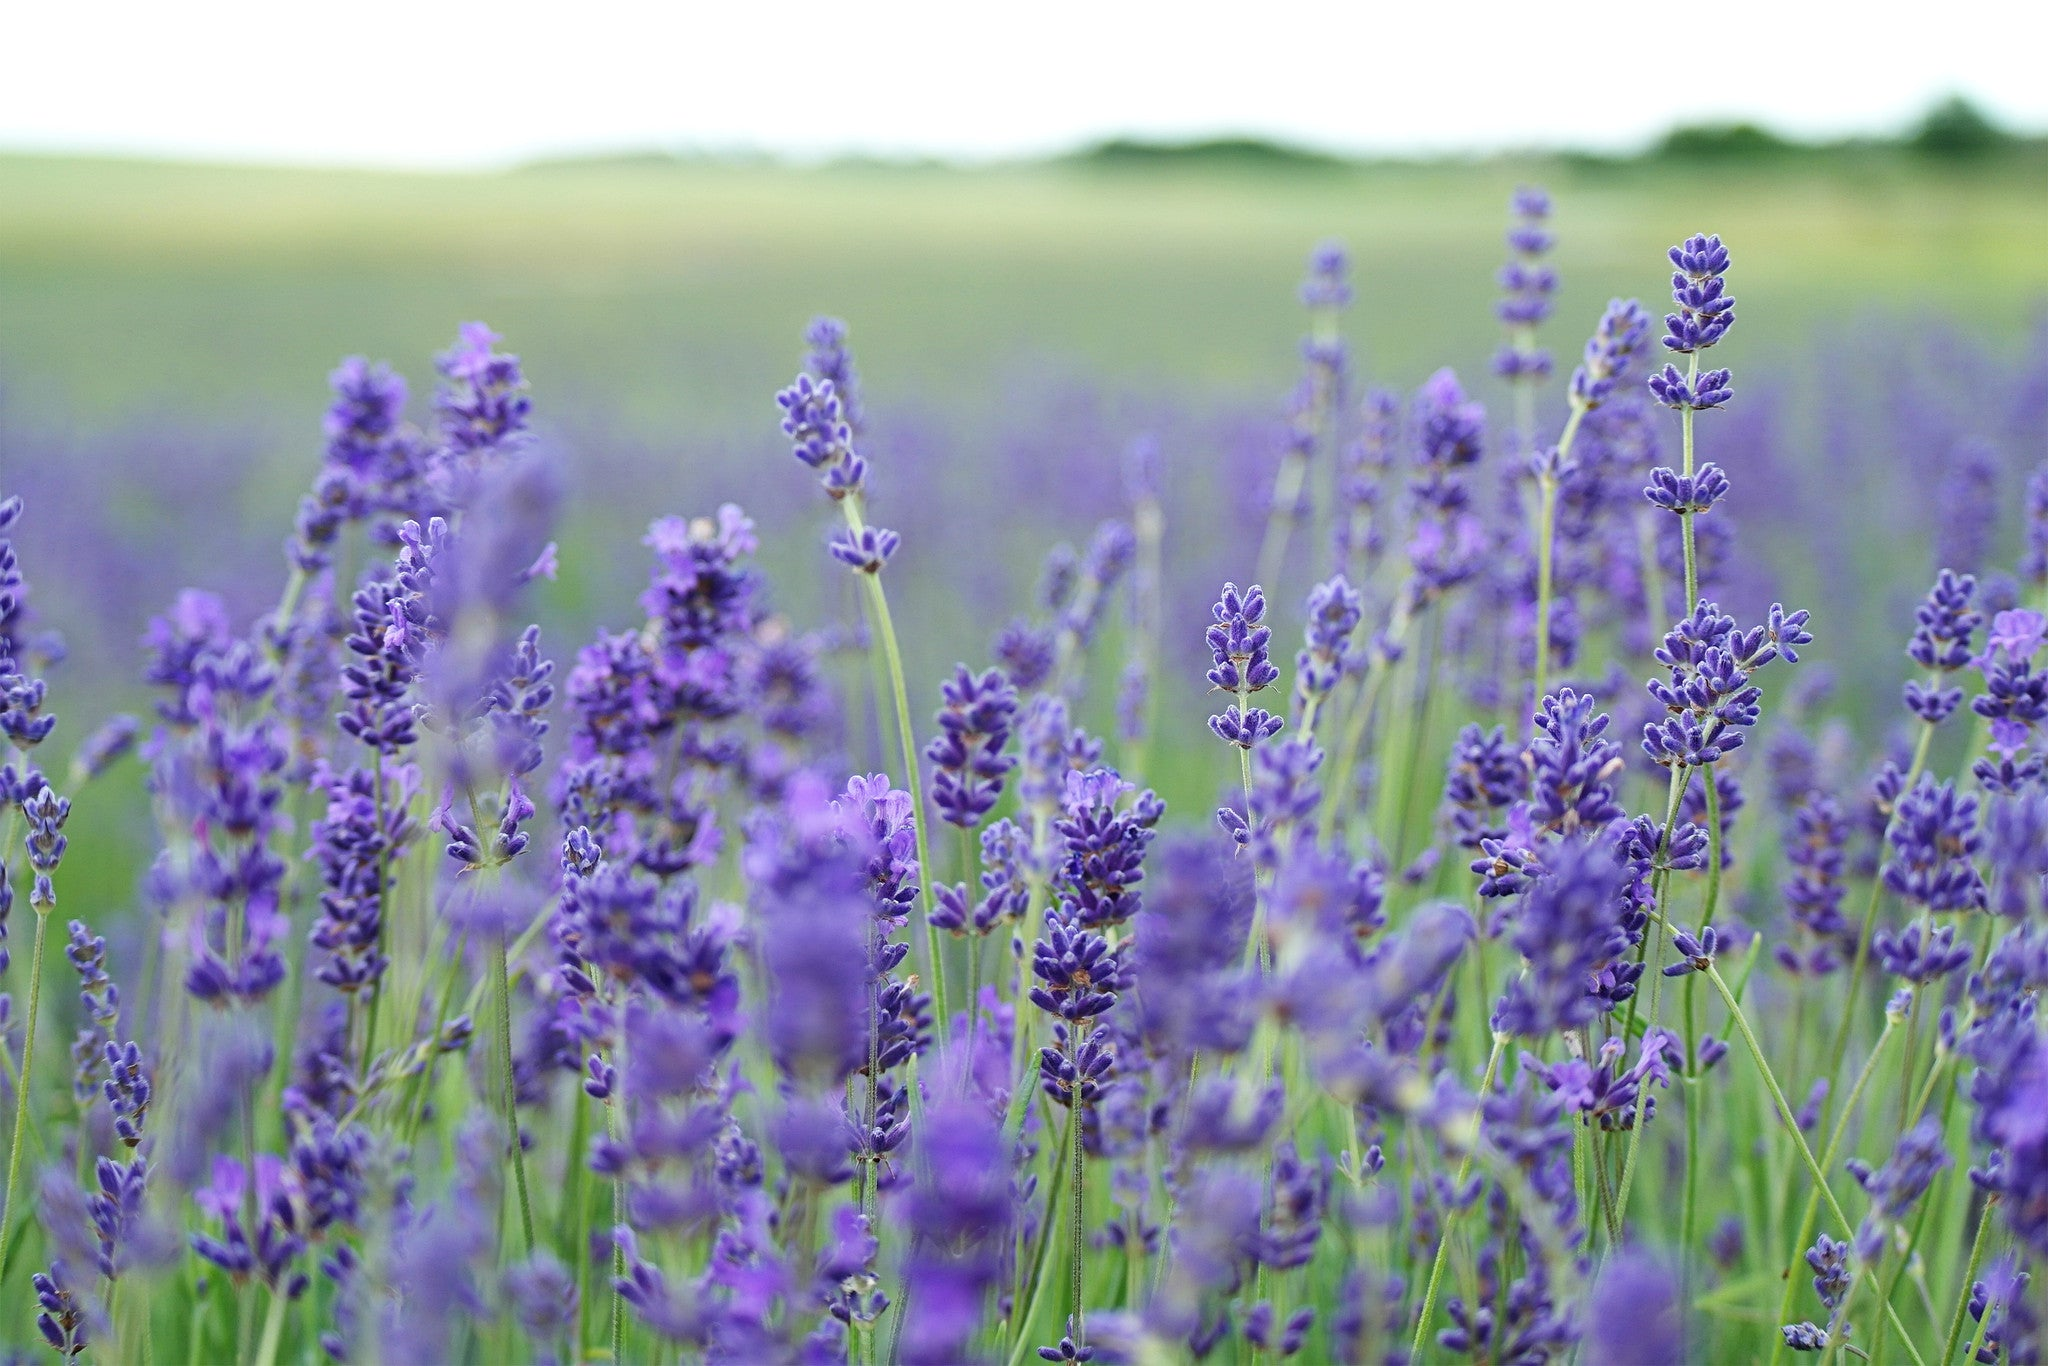 Mia's Event Alert! Herb and Lavender Festival June 18-19 in Santa Fe!